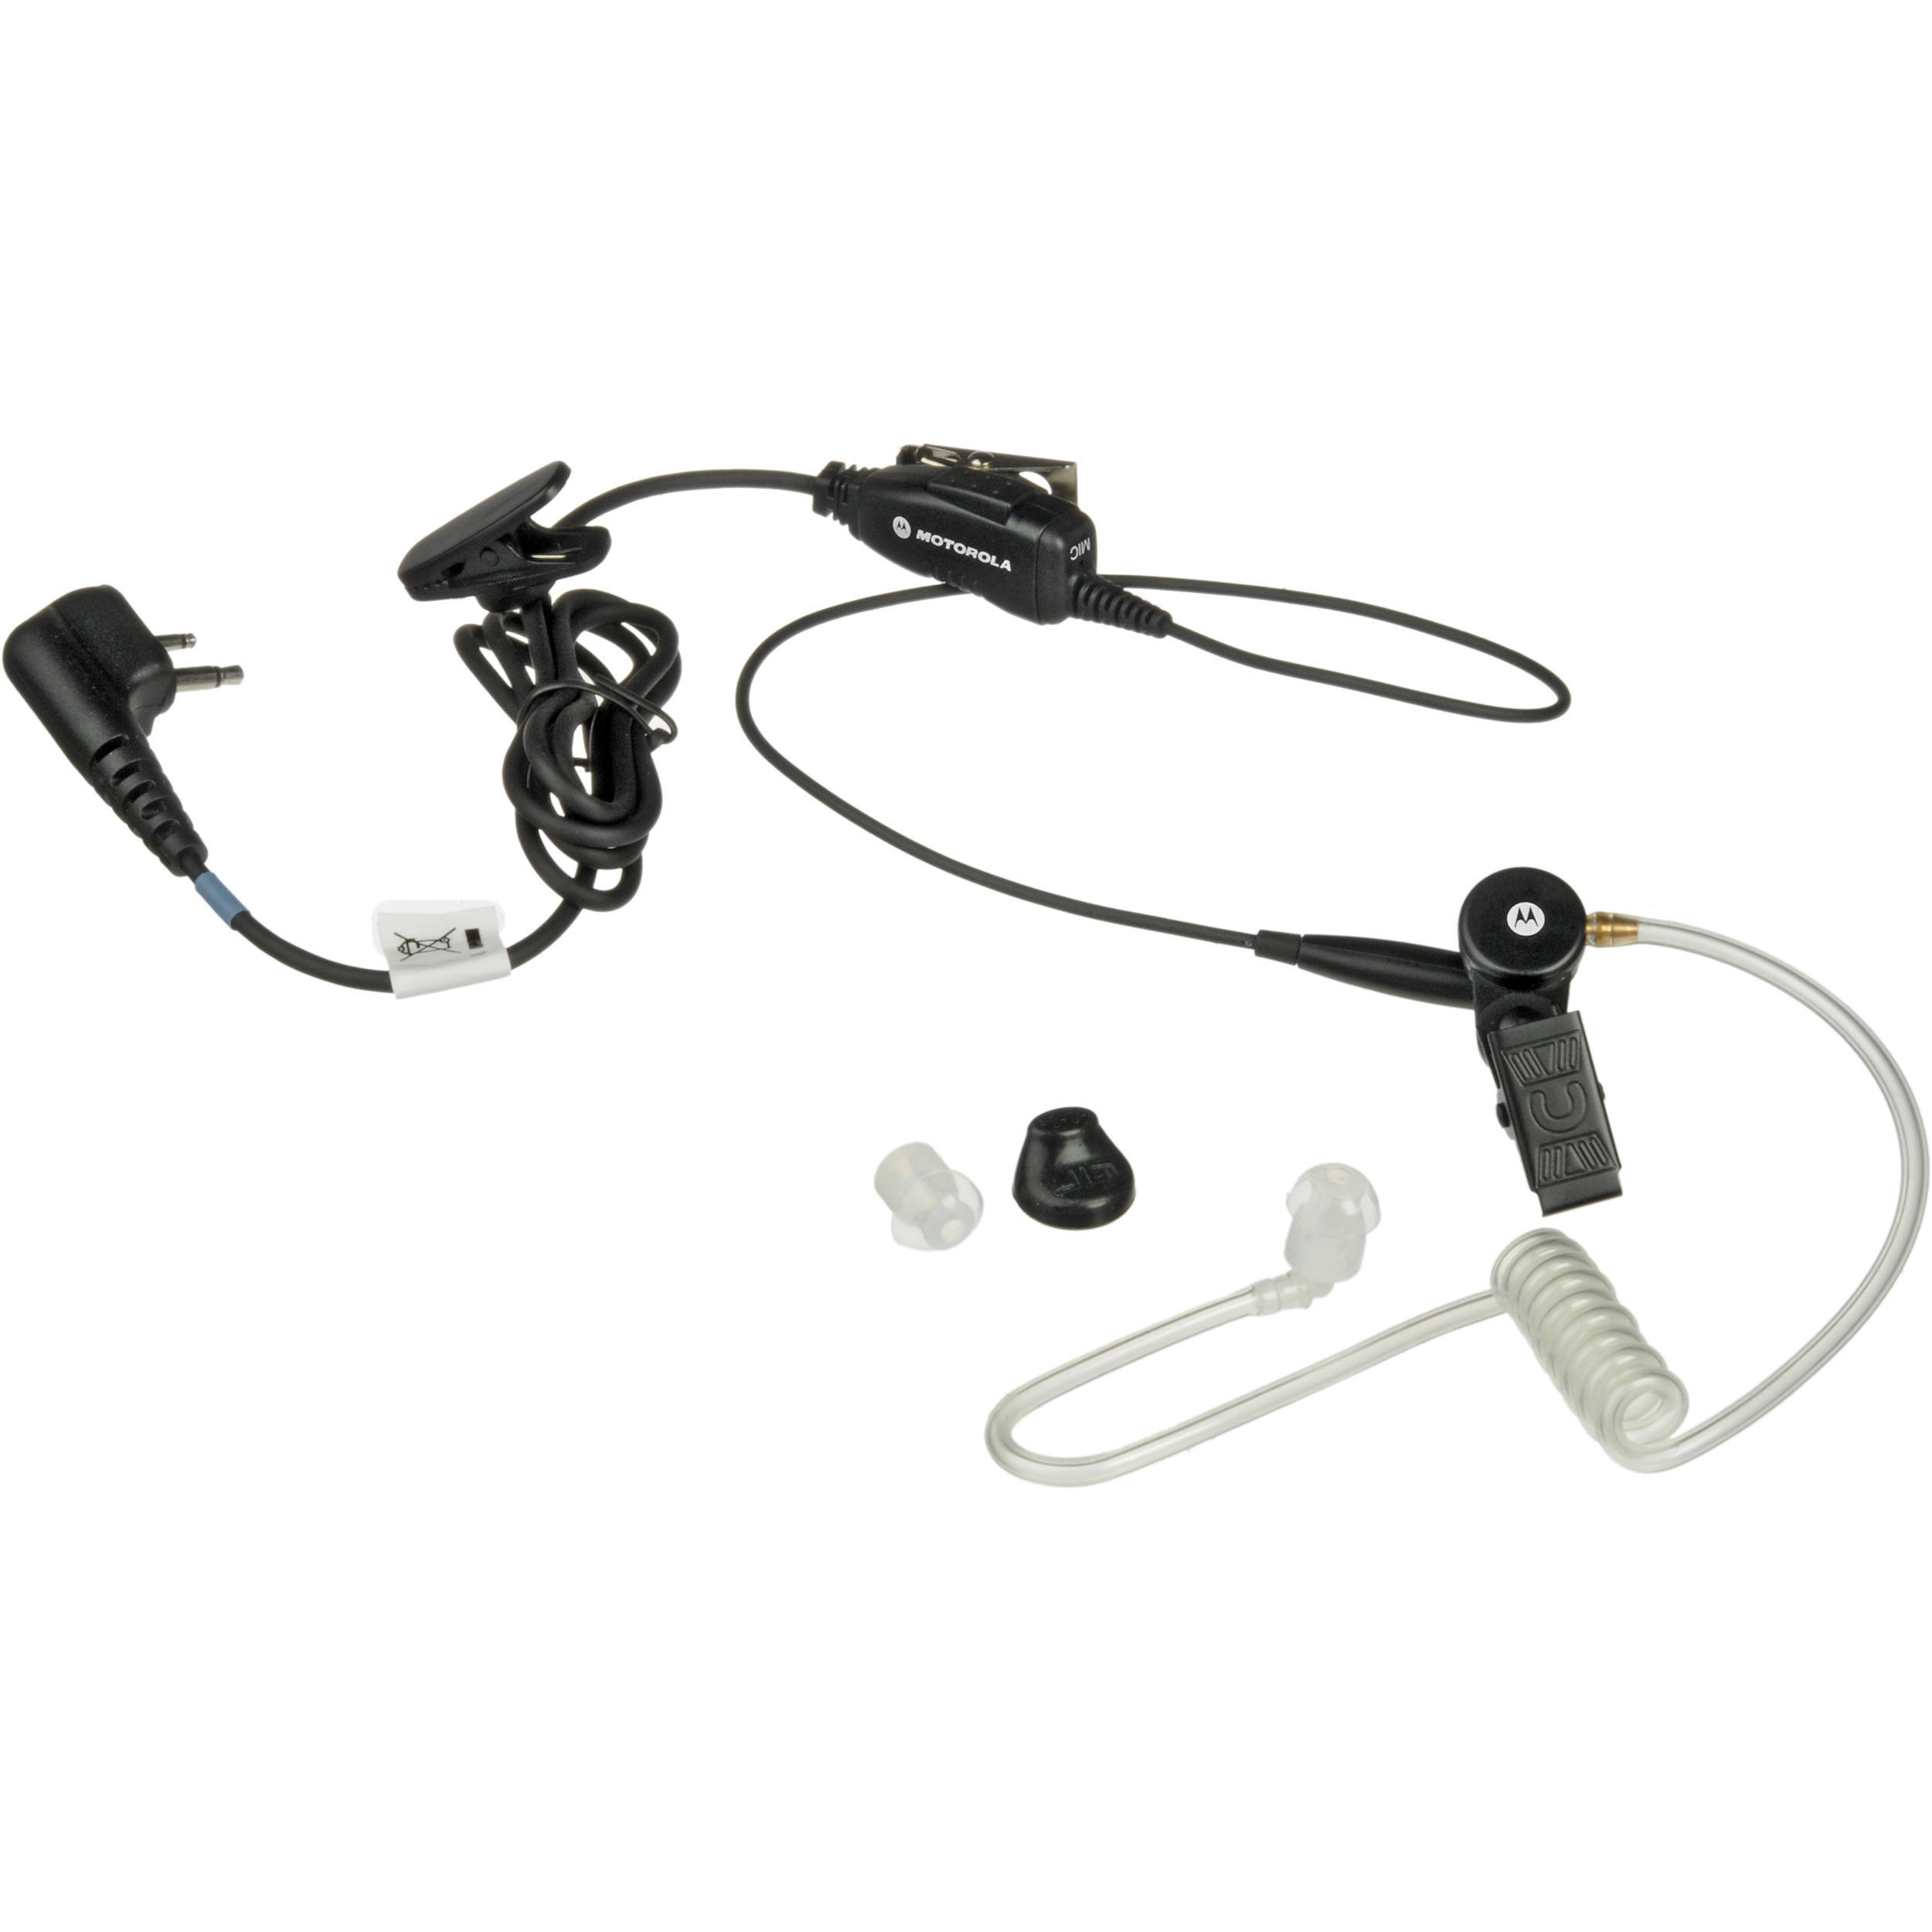 Motorola Hkln Single Wire Surveillance Earpiece